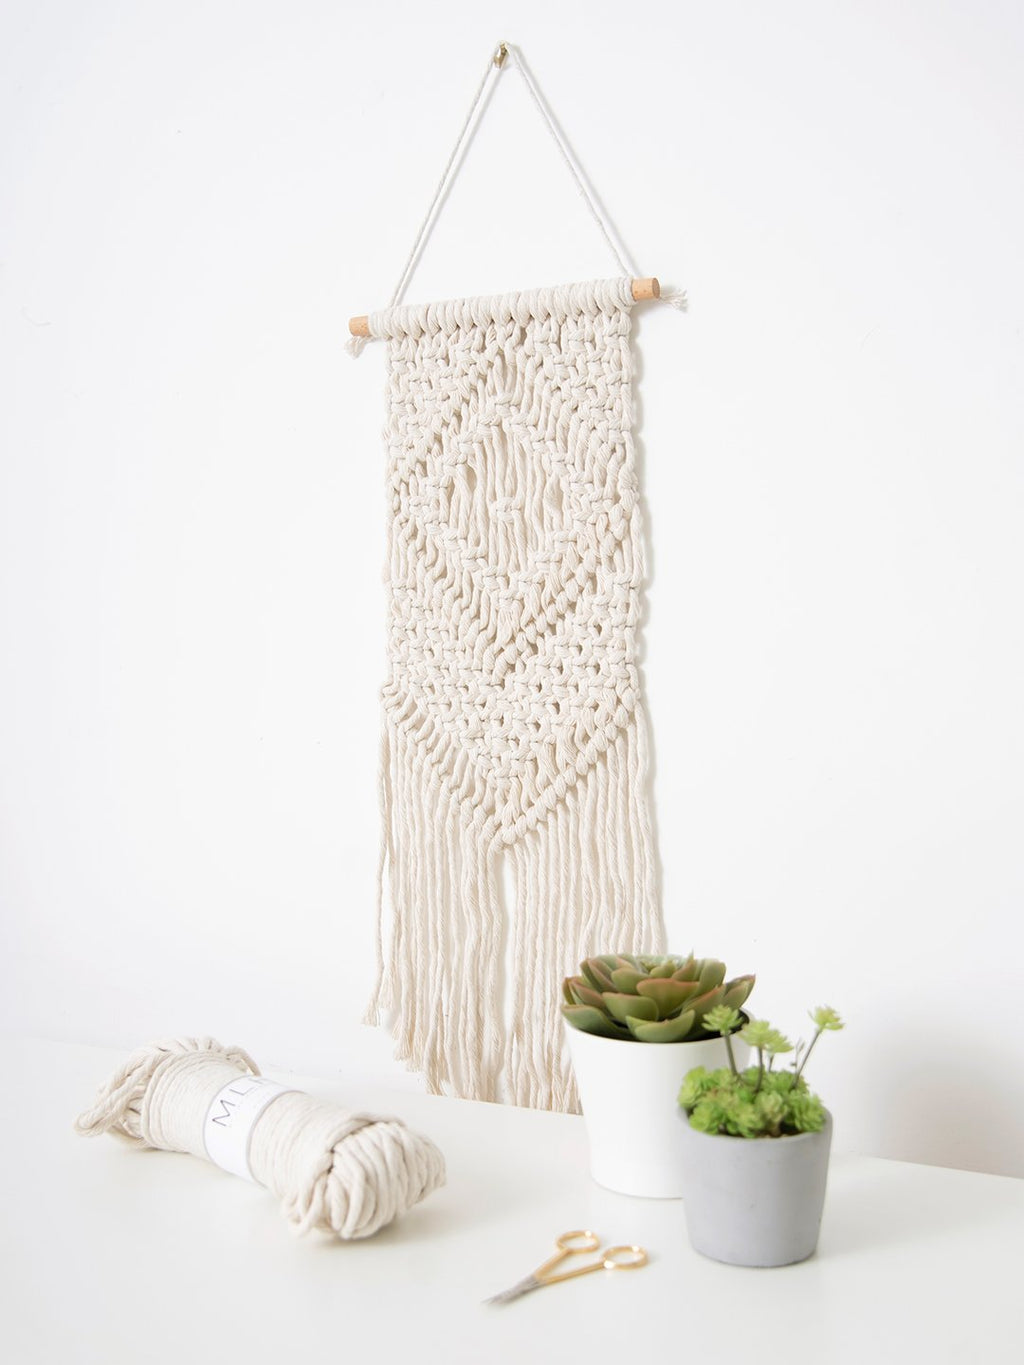 Large Macramé Wall Hanging Craft Kit